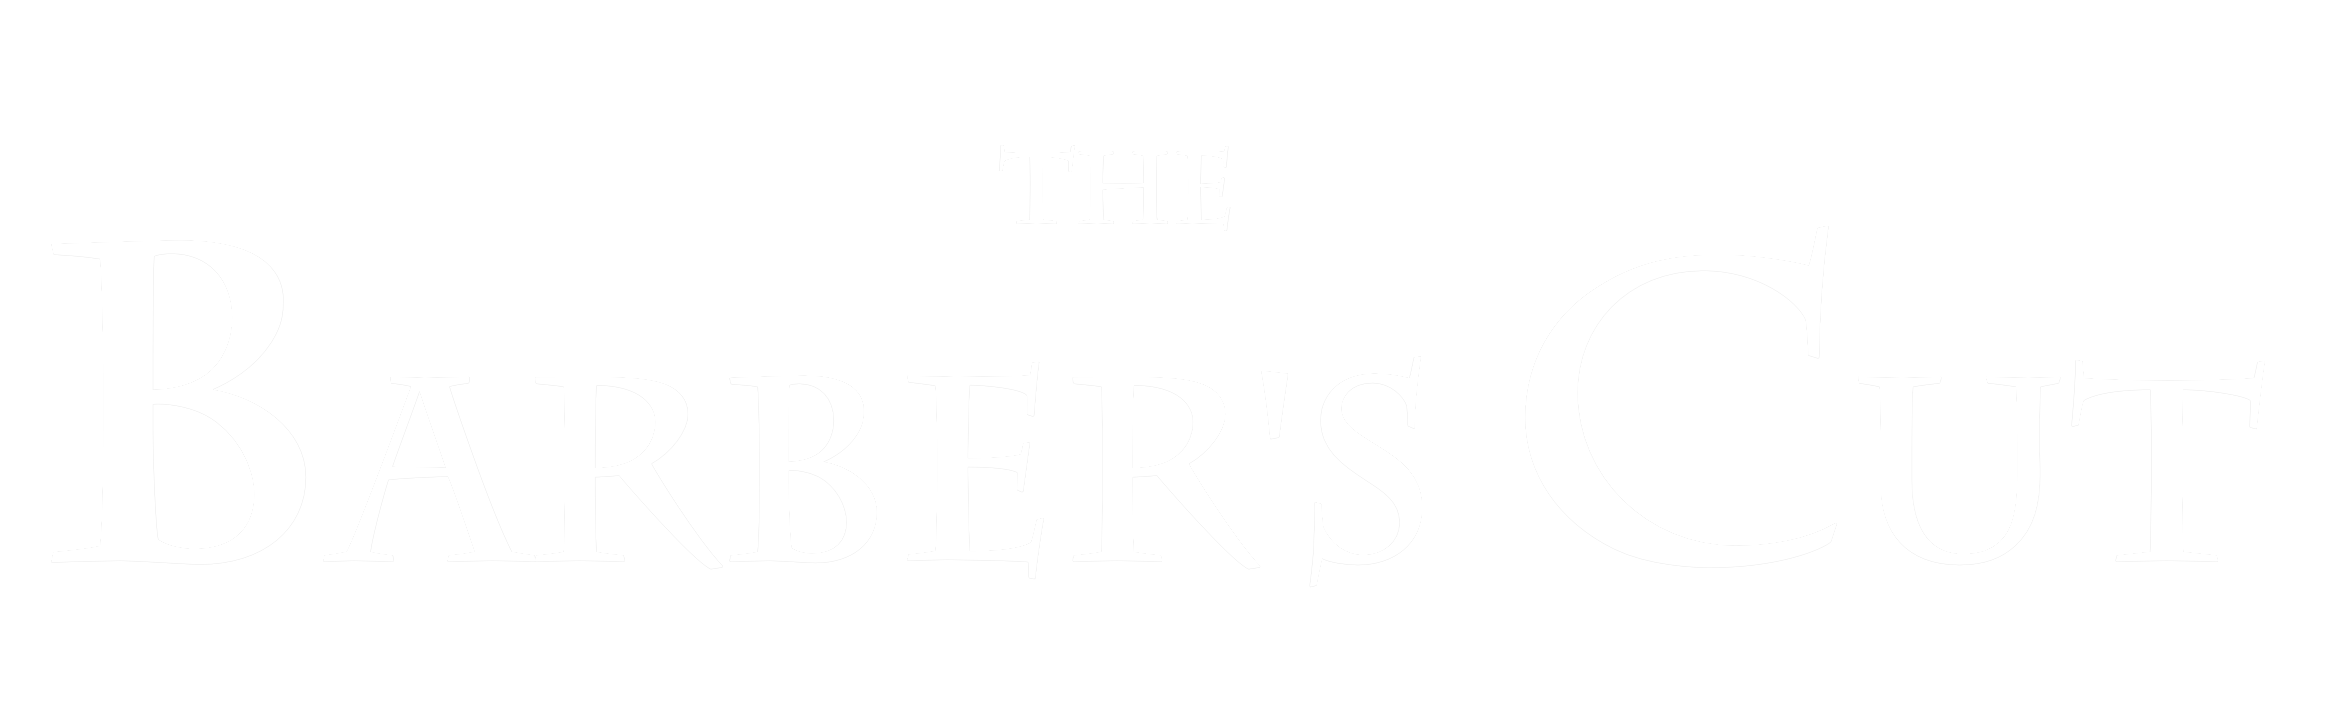 The Barbers Cut Logo.PNG